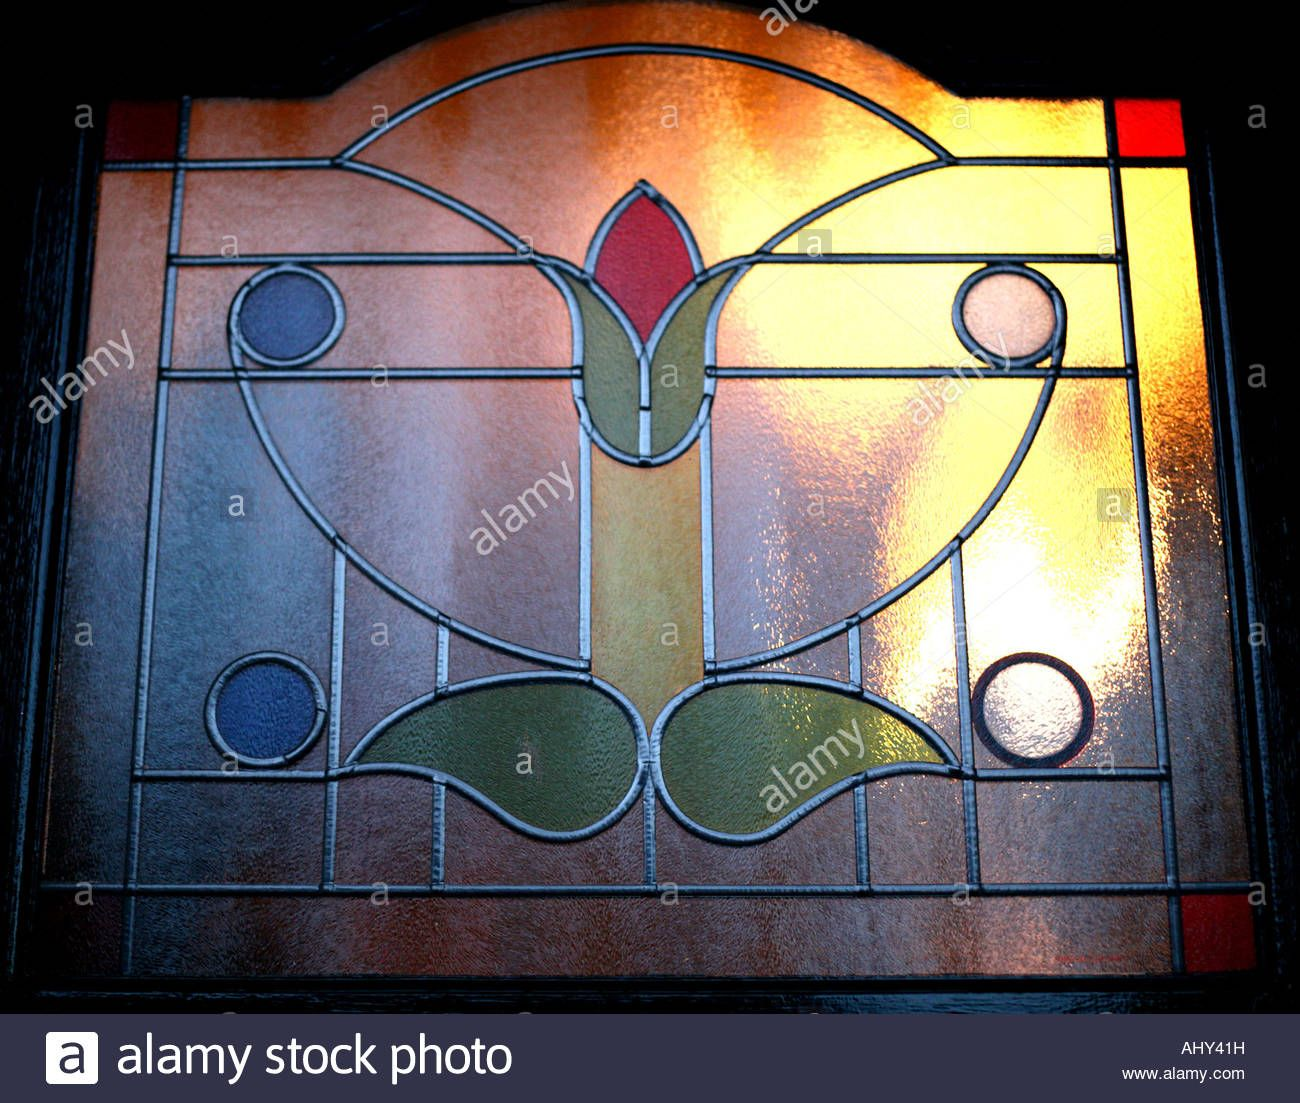 Download this stock image night view of a stained glass front door